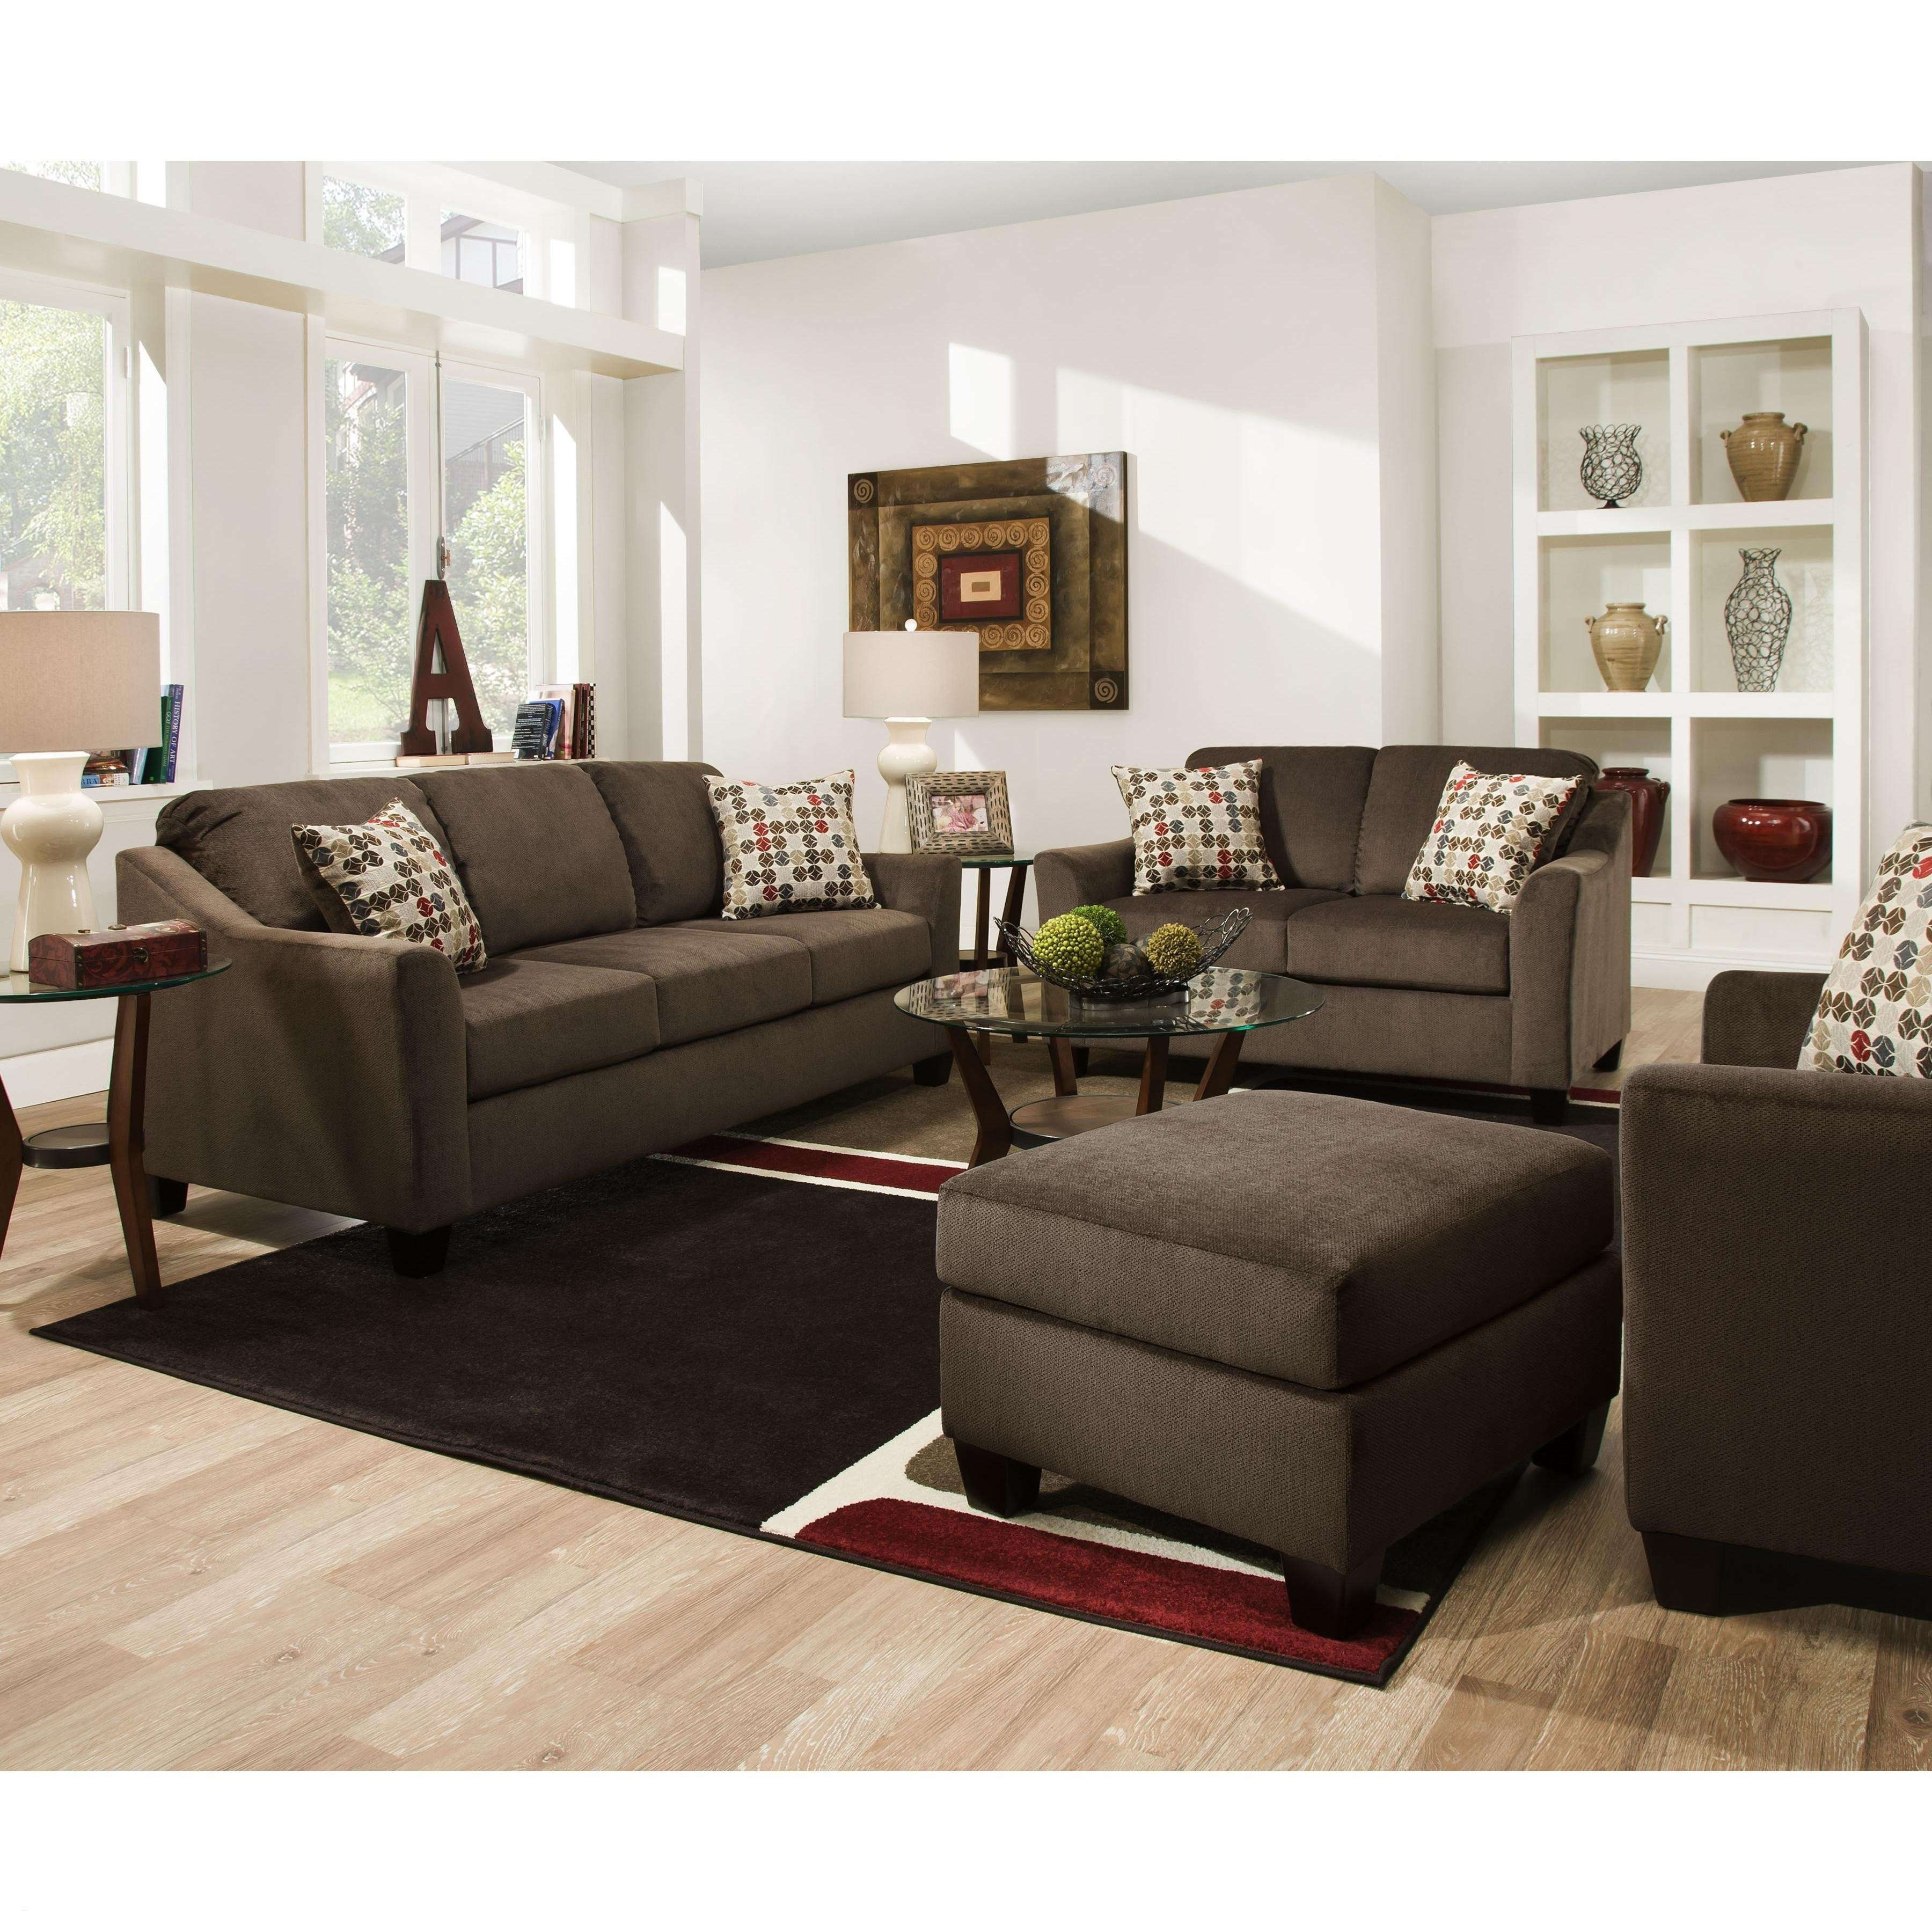 2 Couches In Living Room Luxury 33 Awesome Small Living